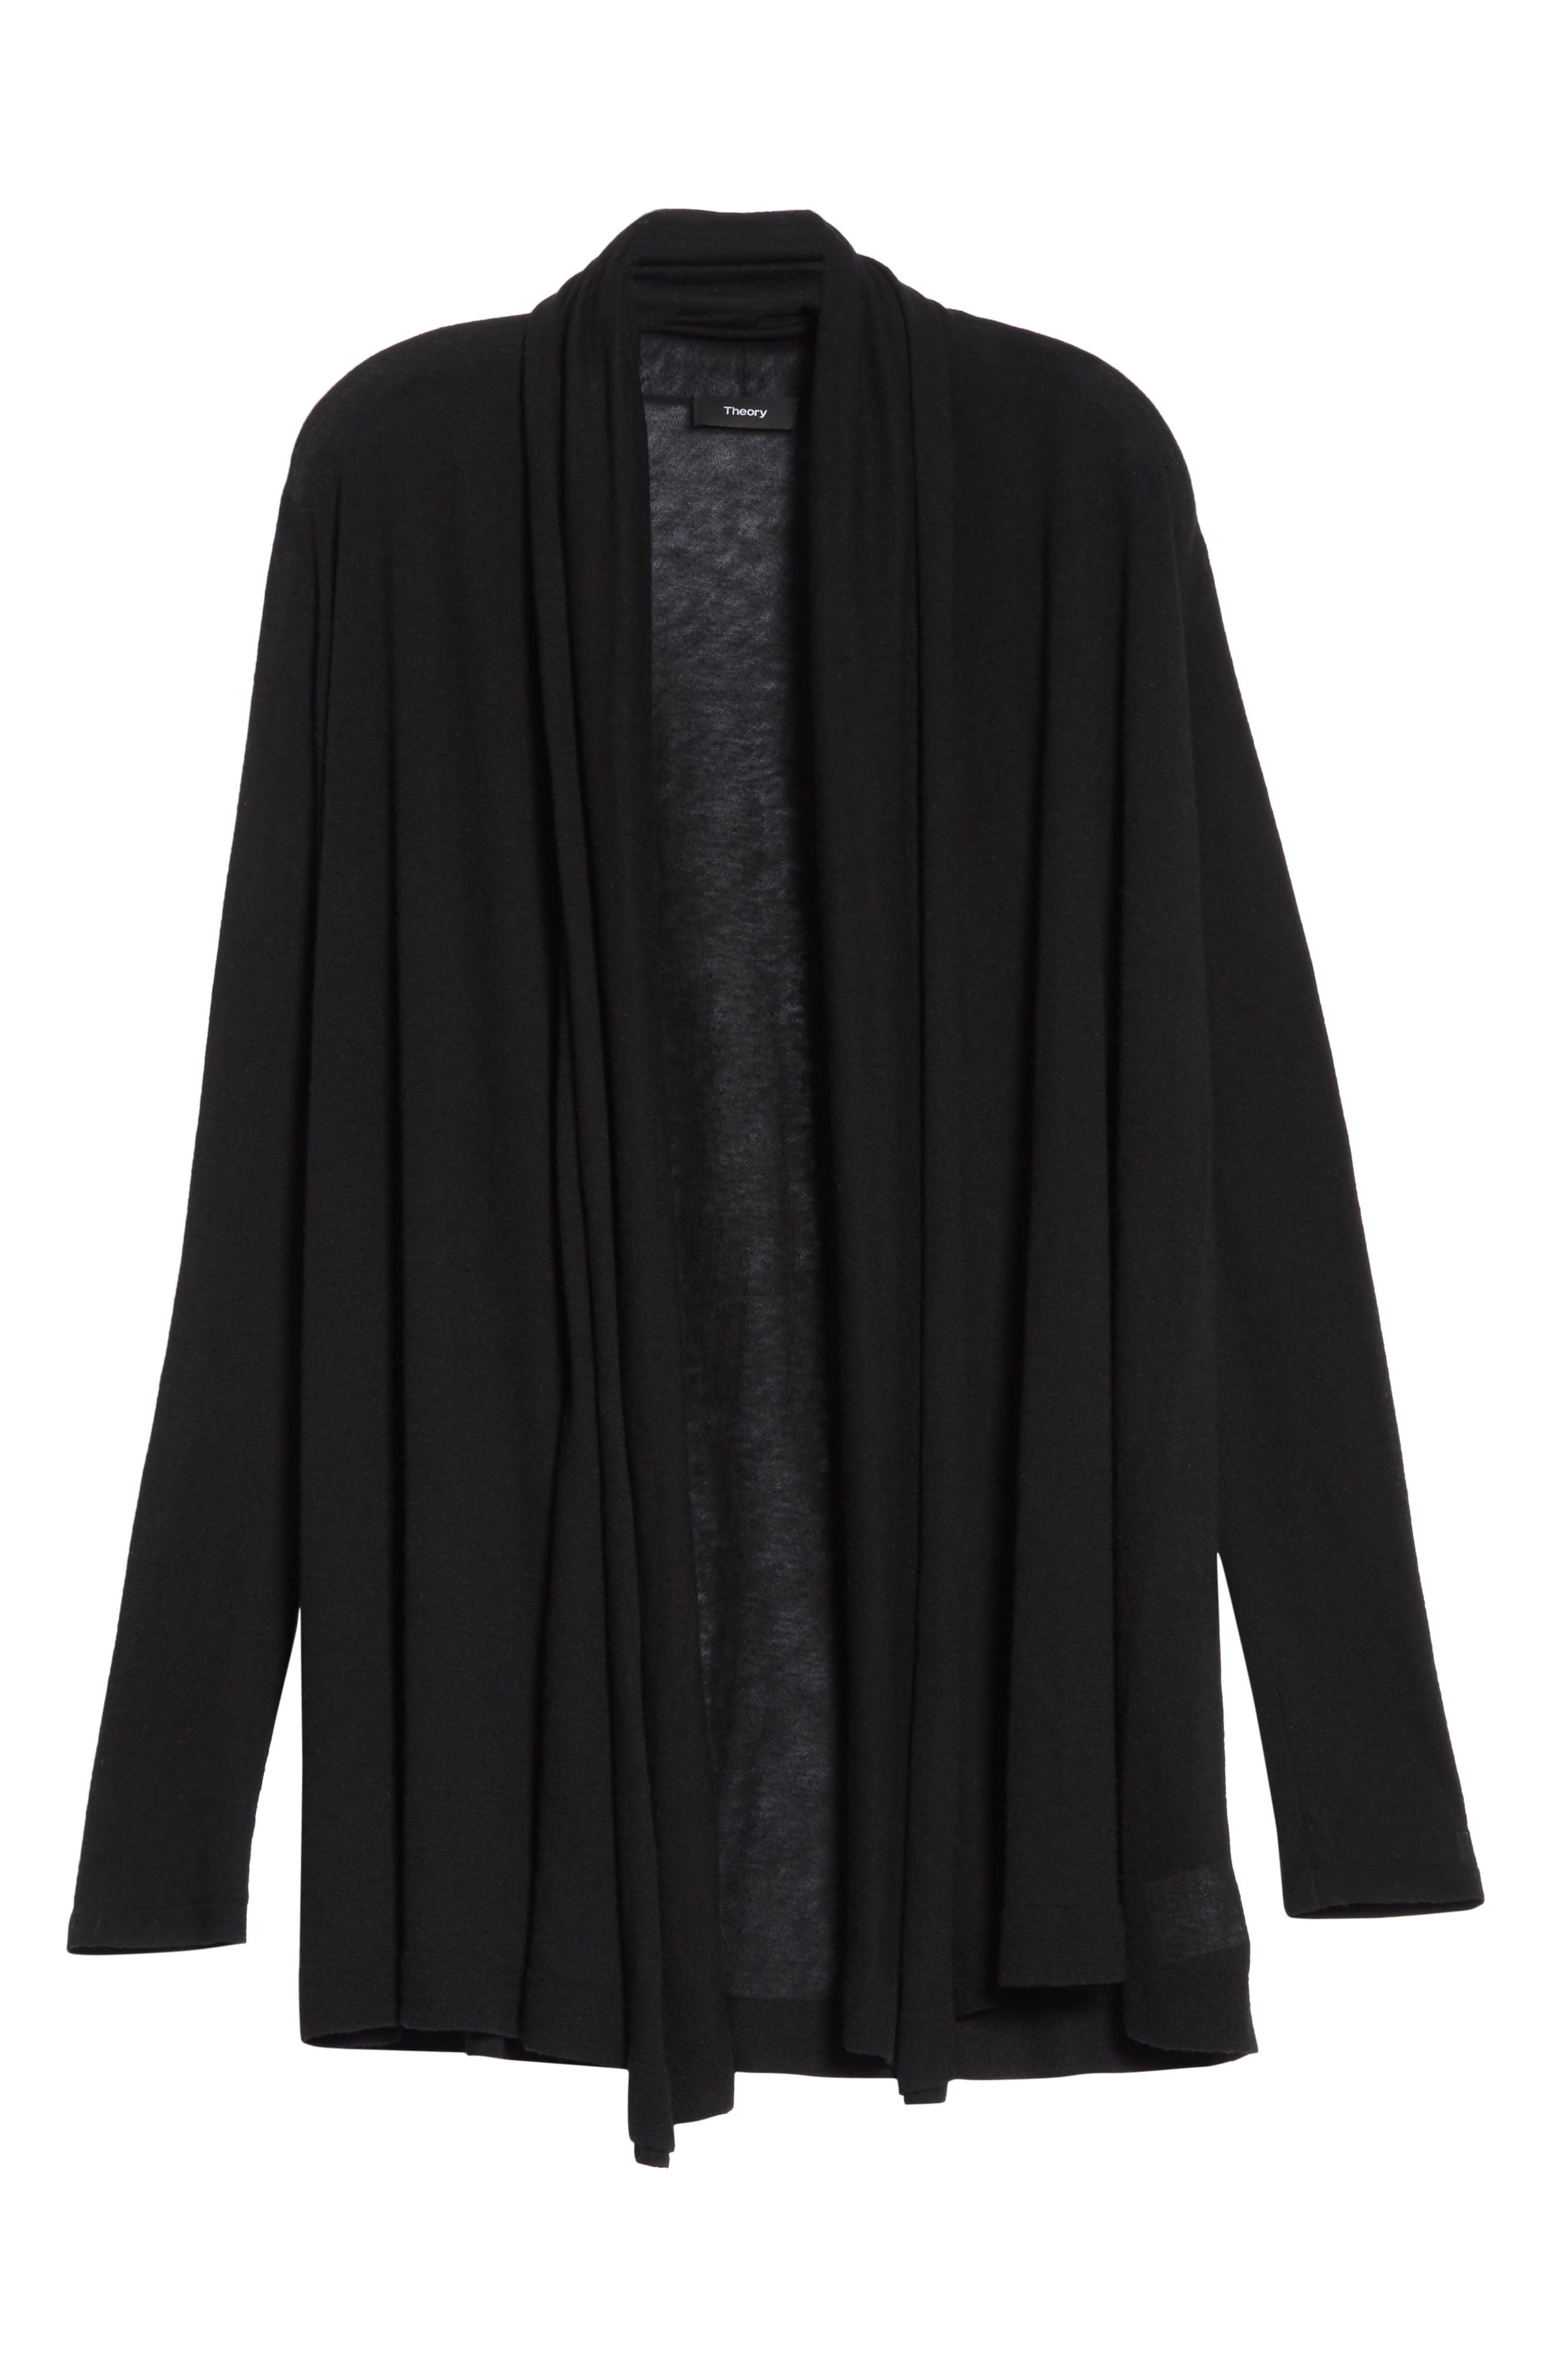 THEORY,                             Featherweight Cashmere Cardigan,                             Alternate thumbnail 6, color,                             001